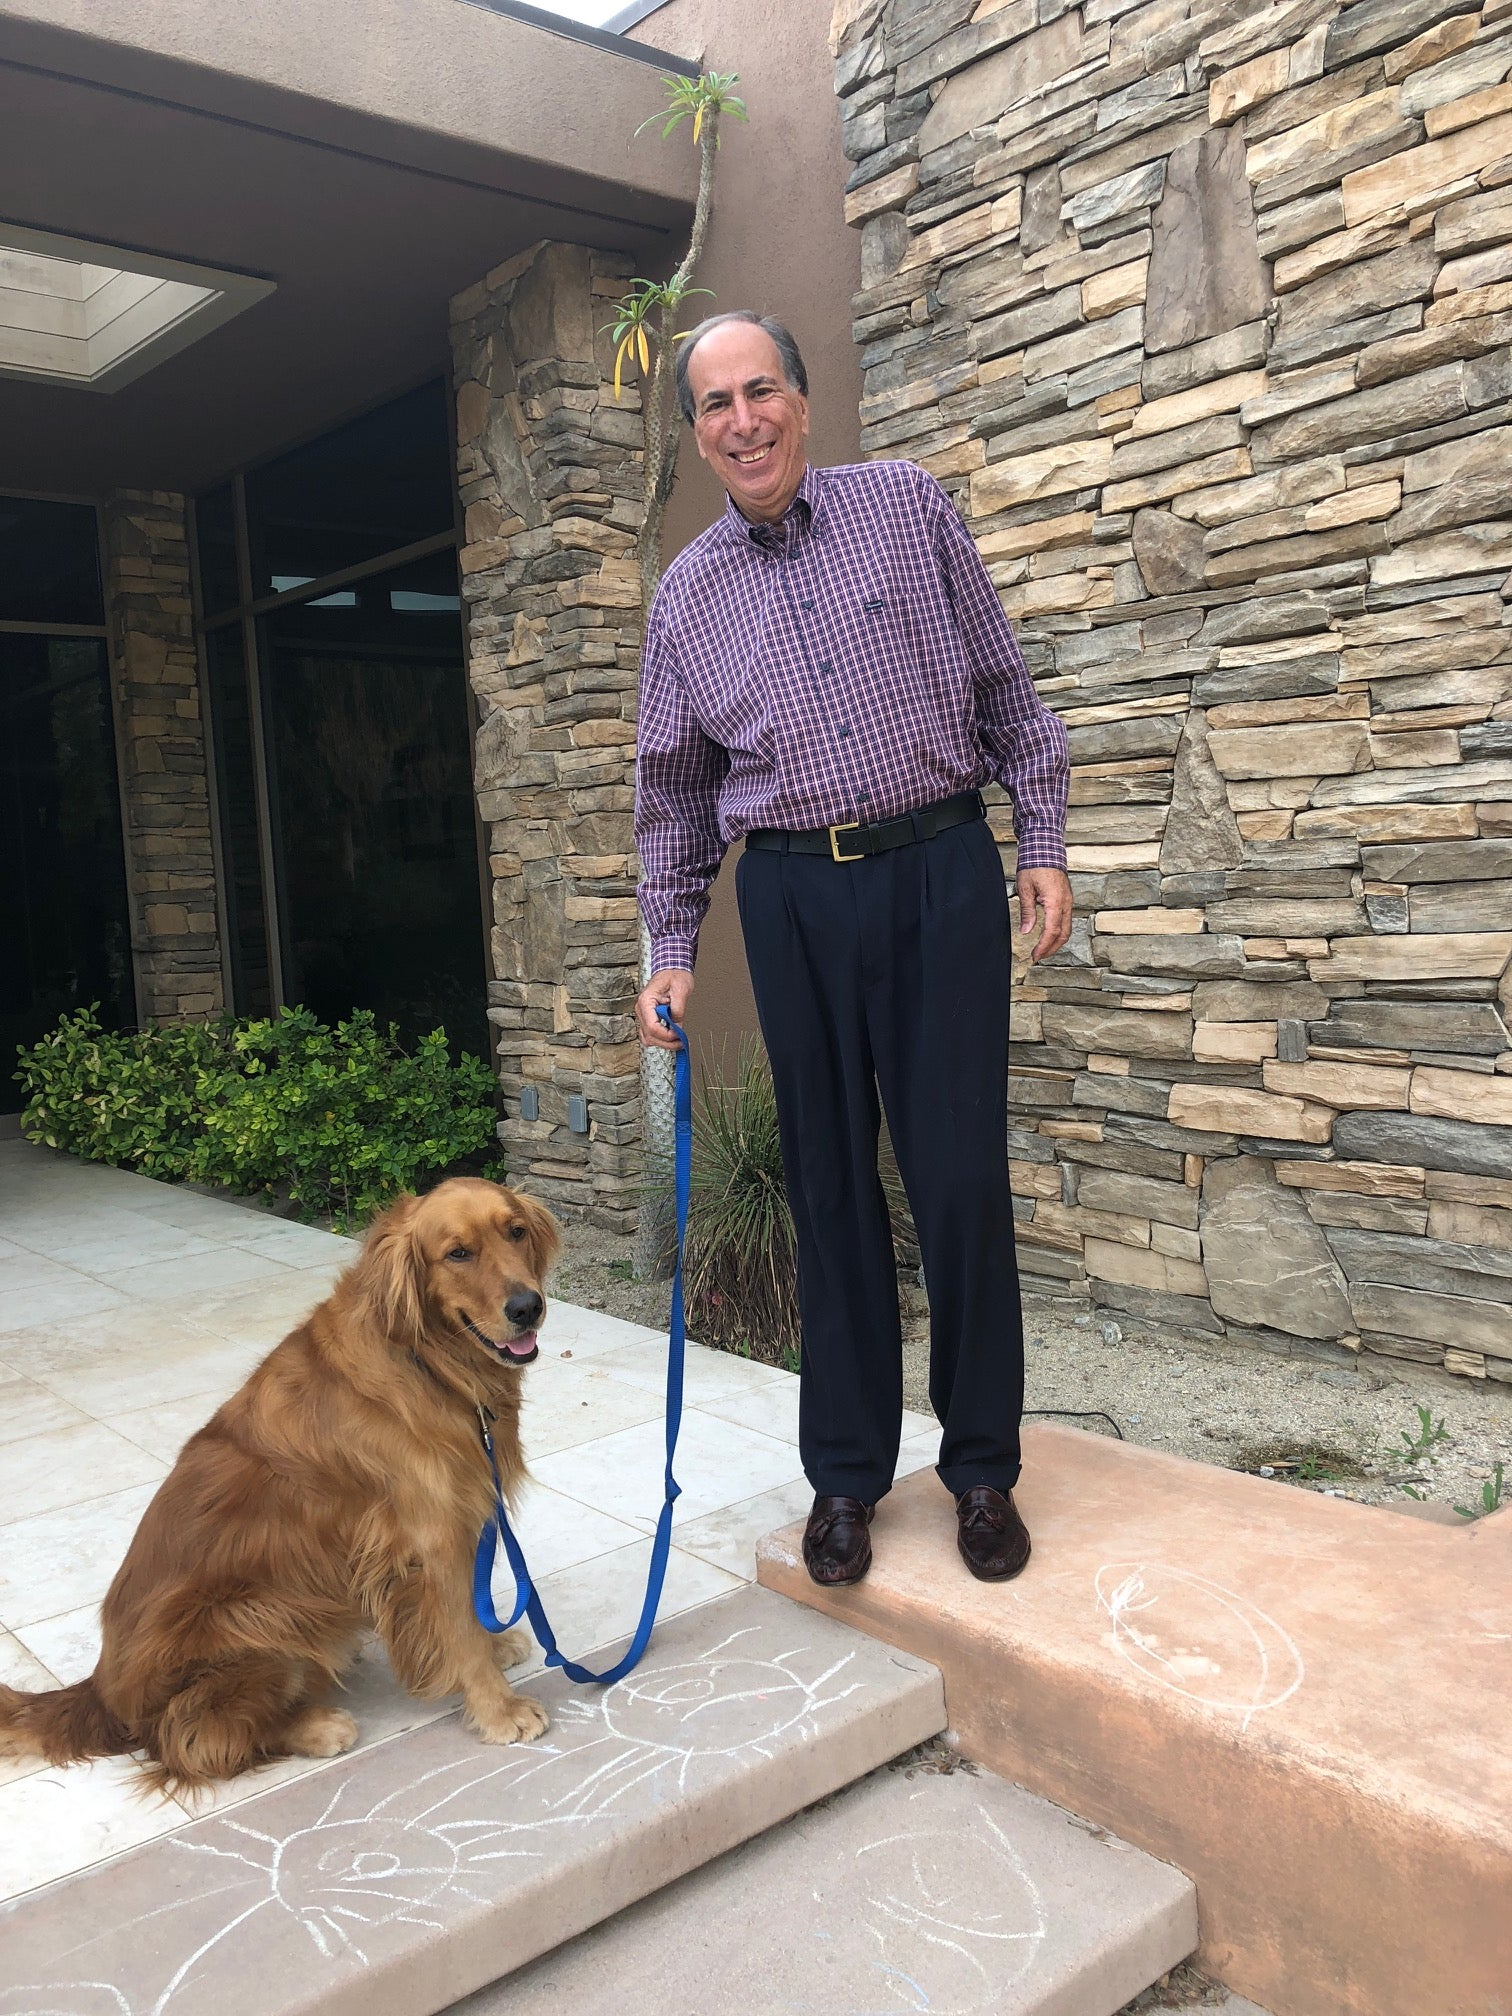 An older guy wearing a shirt and trousers standing next to his dog before he hired a stylist